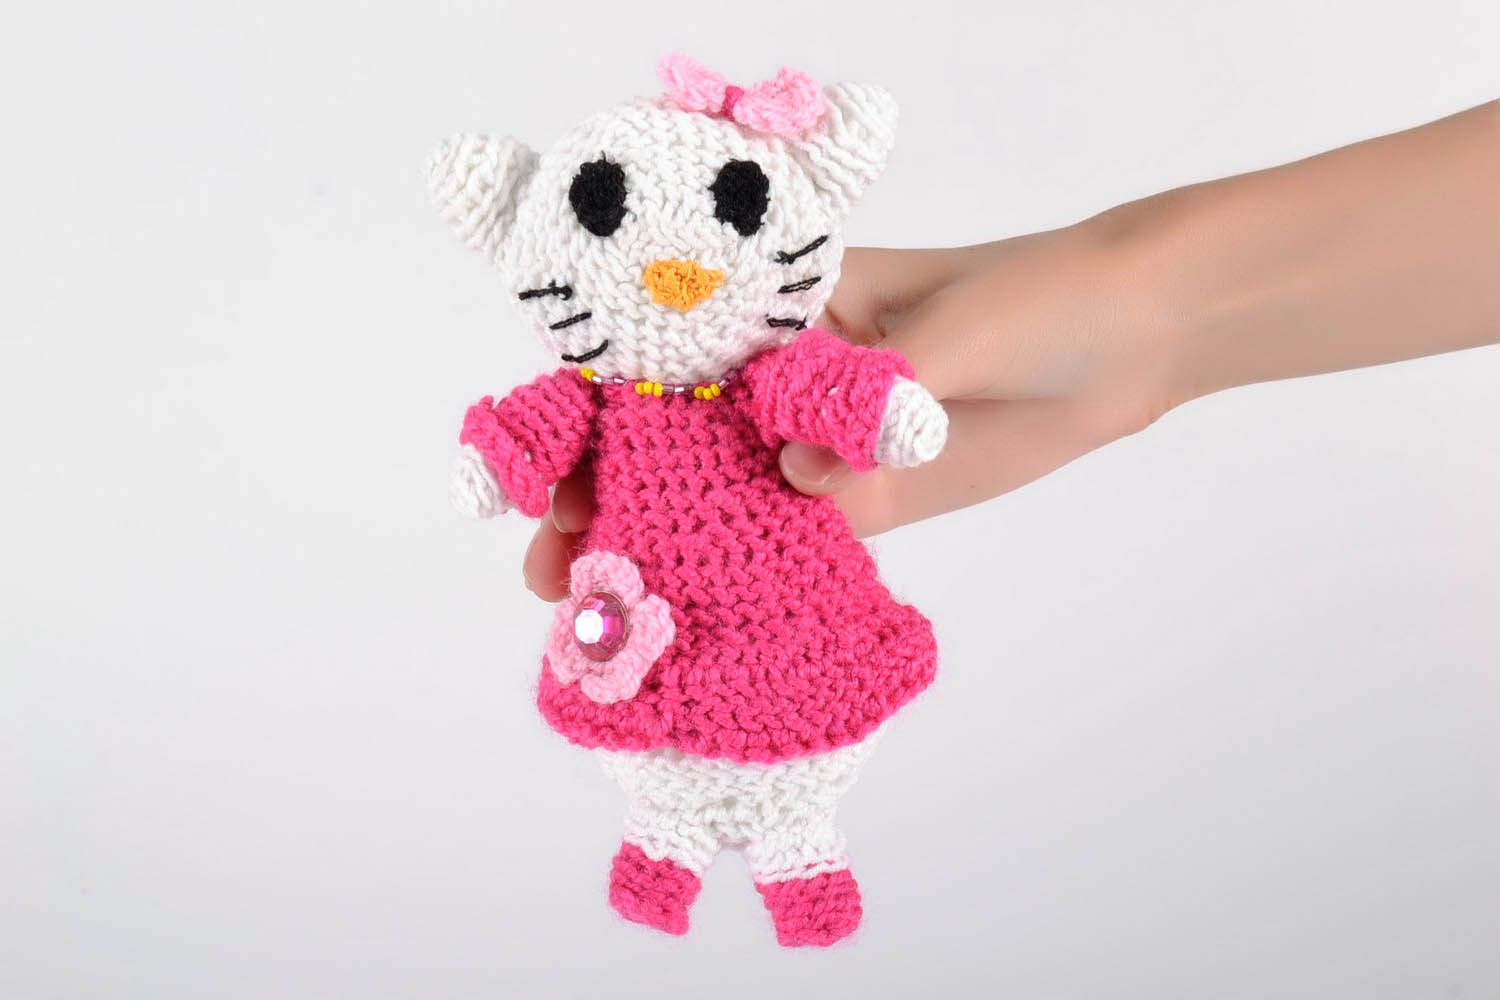 Toy crocheted around with wool threads photo 5